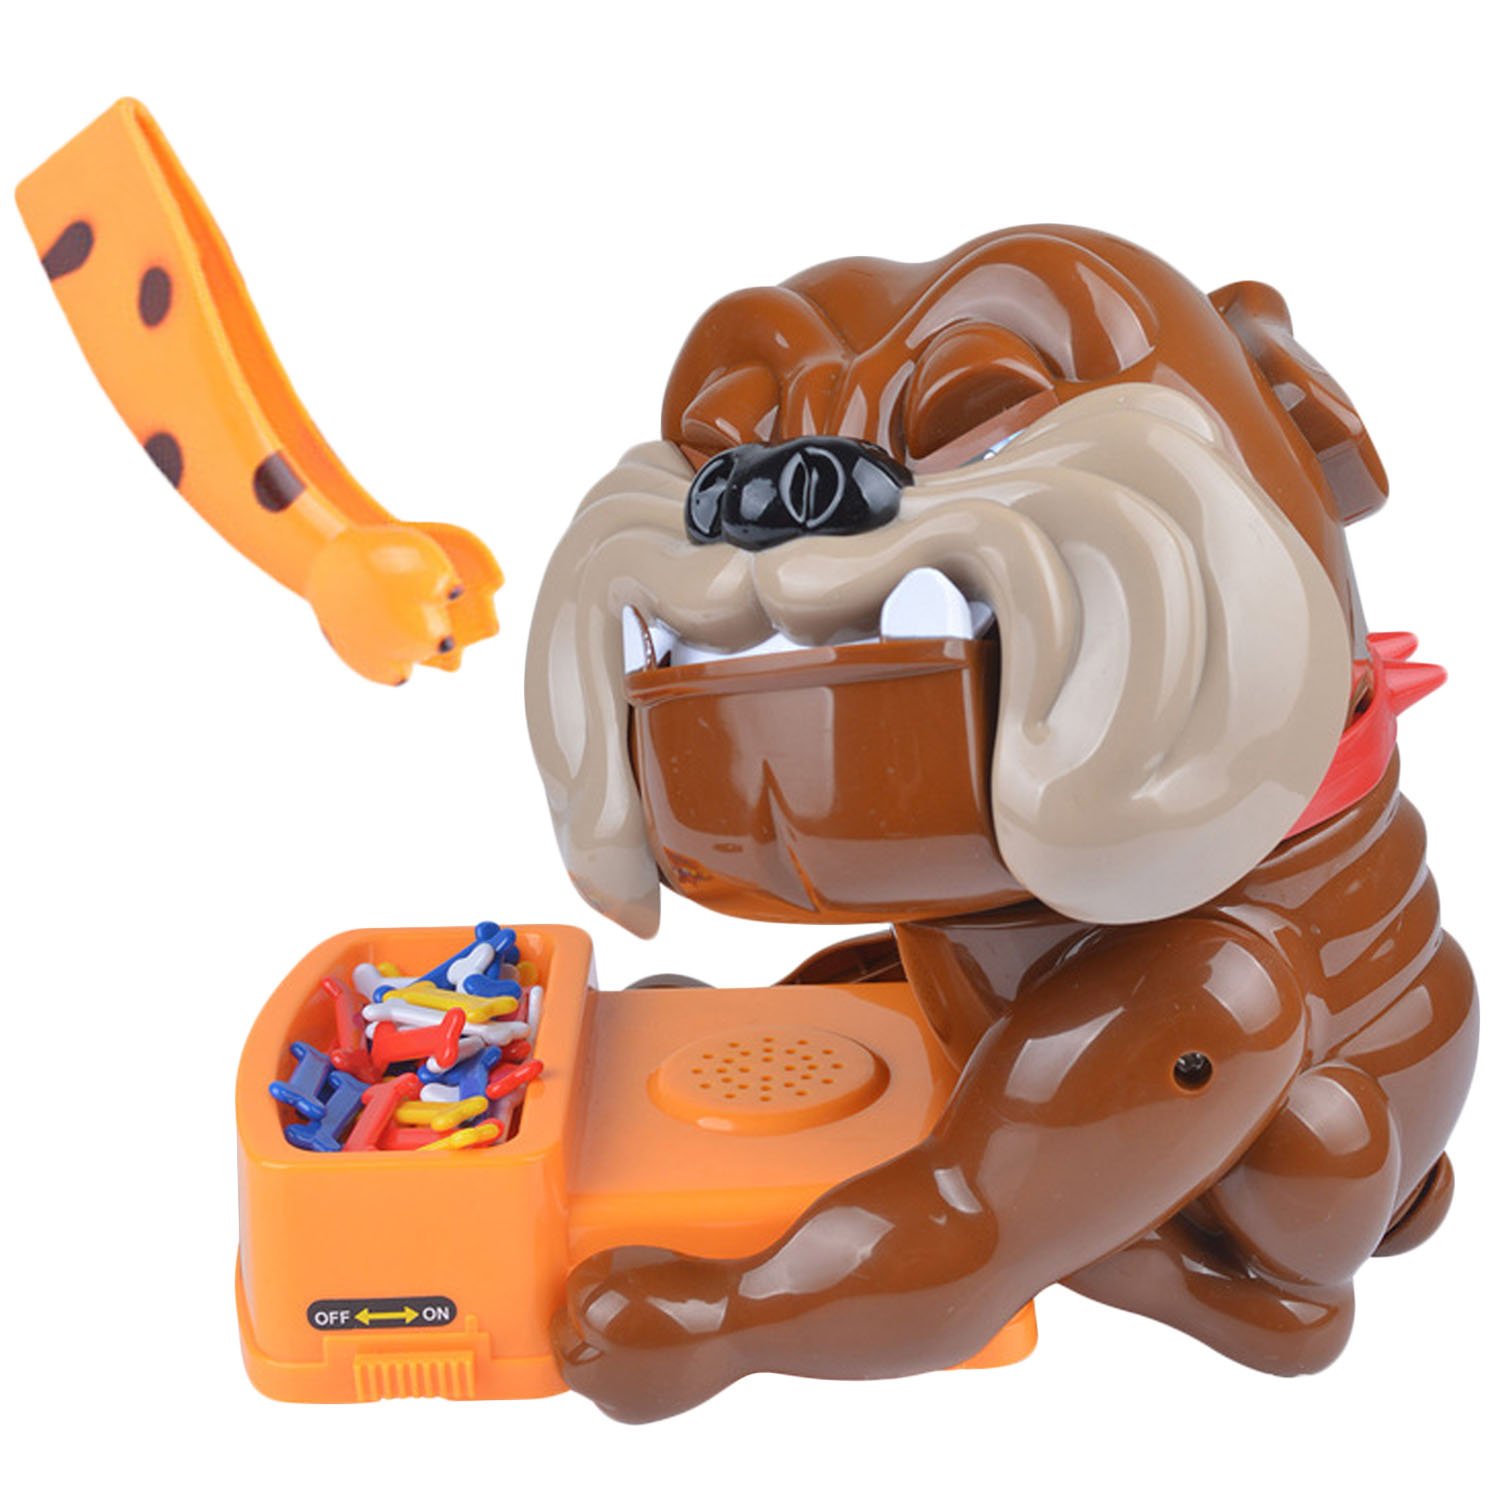 Besegad Funny Tricky Games Bad Dog Chew Bone Action Games Biting Wake Dog Interactive Toys For Party Family Parents Kids Friends